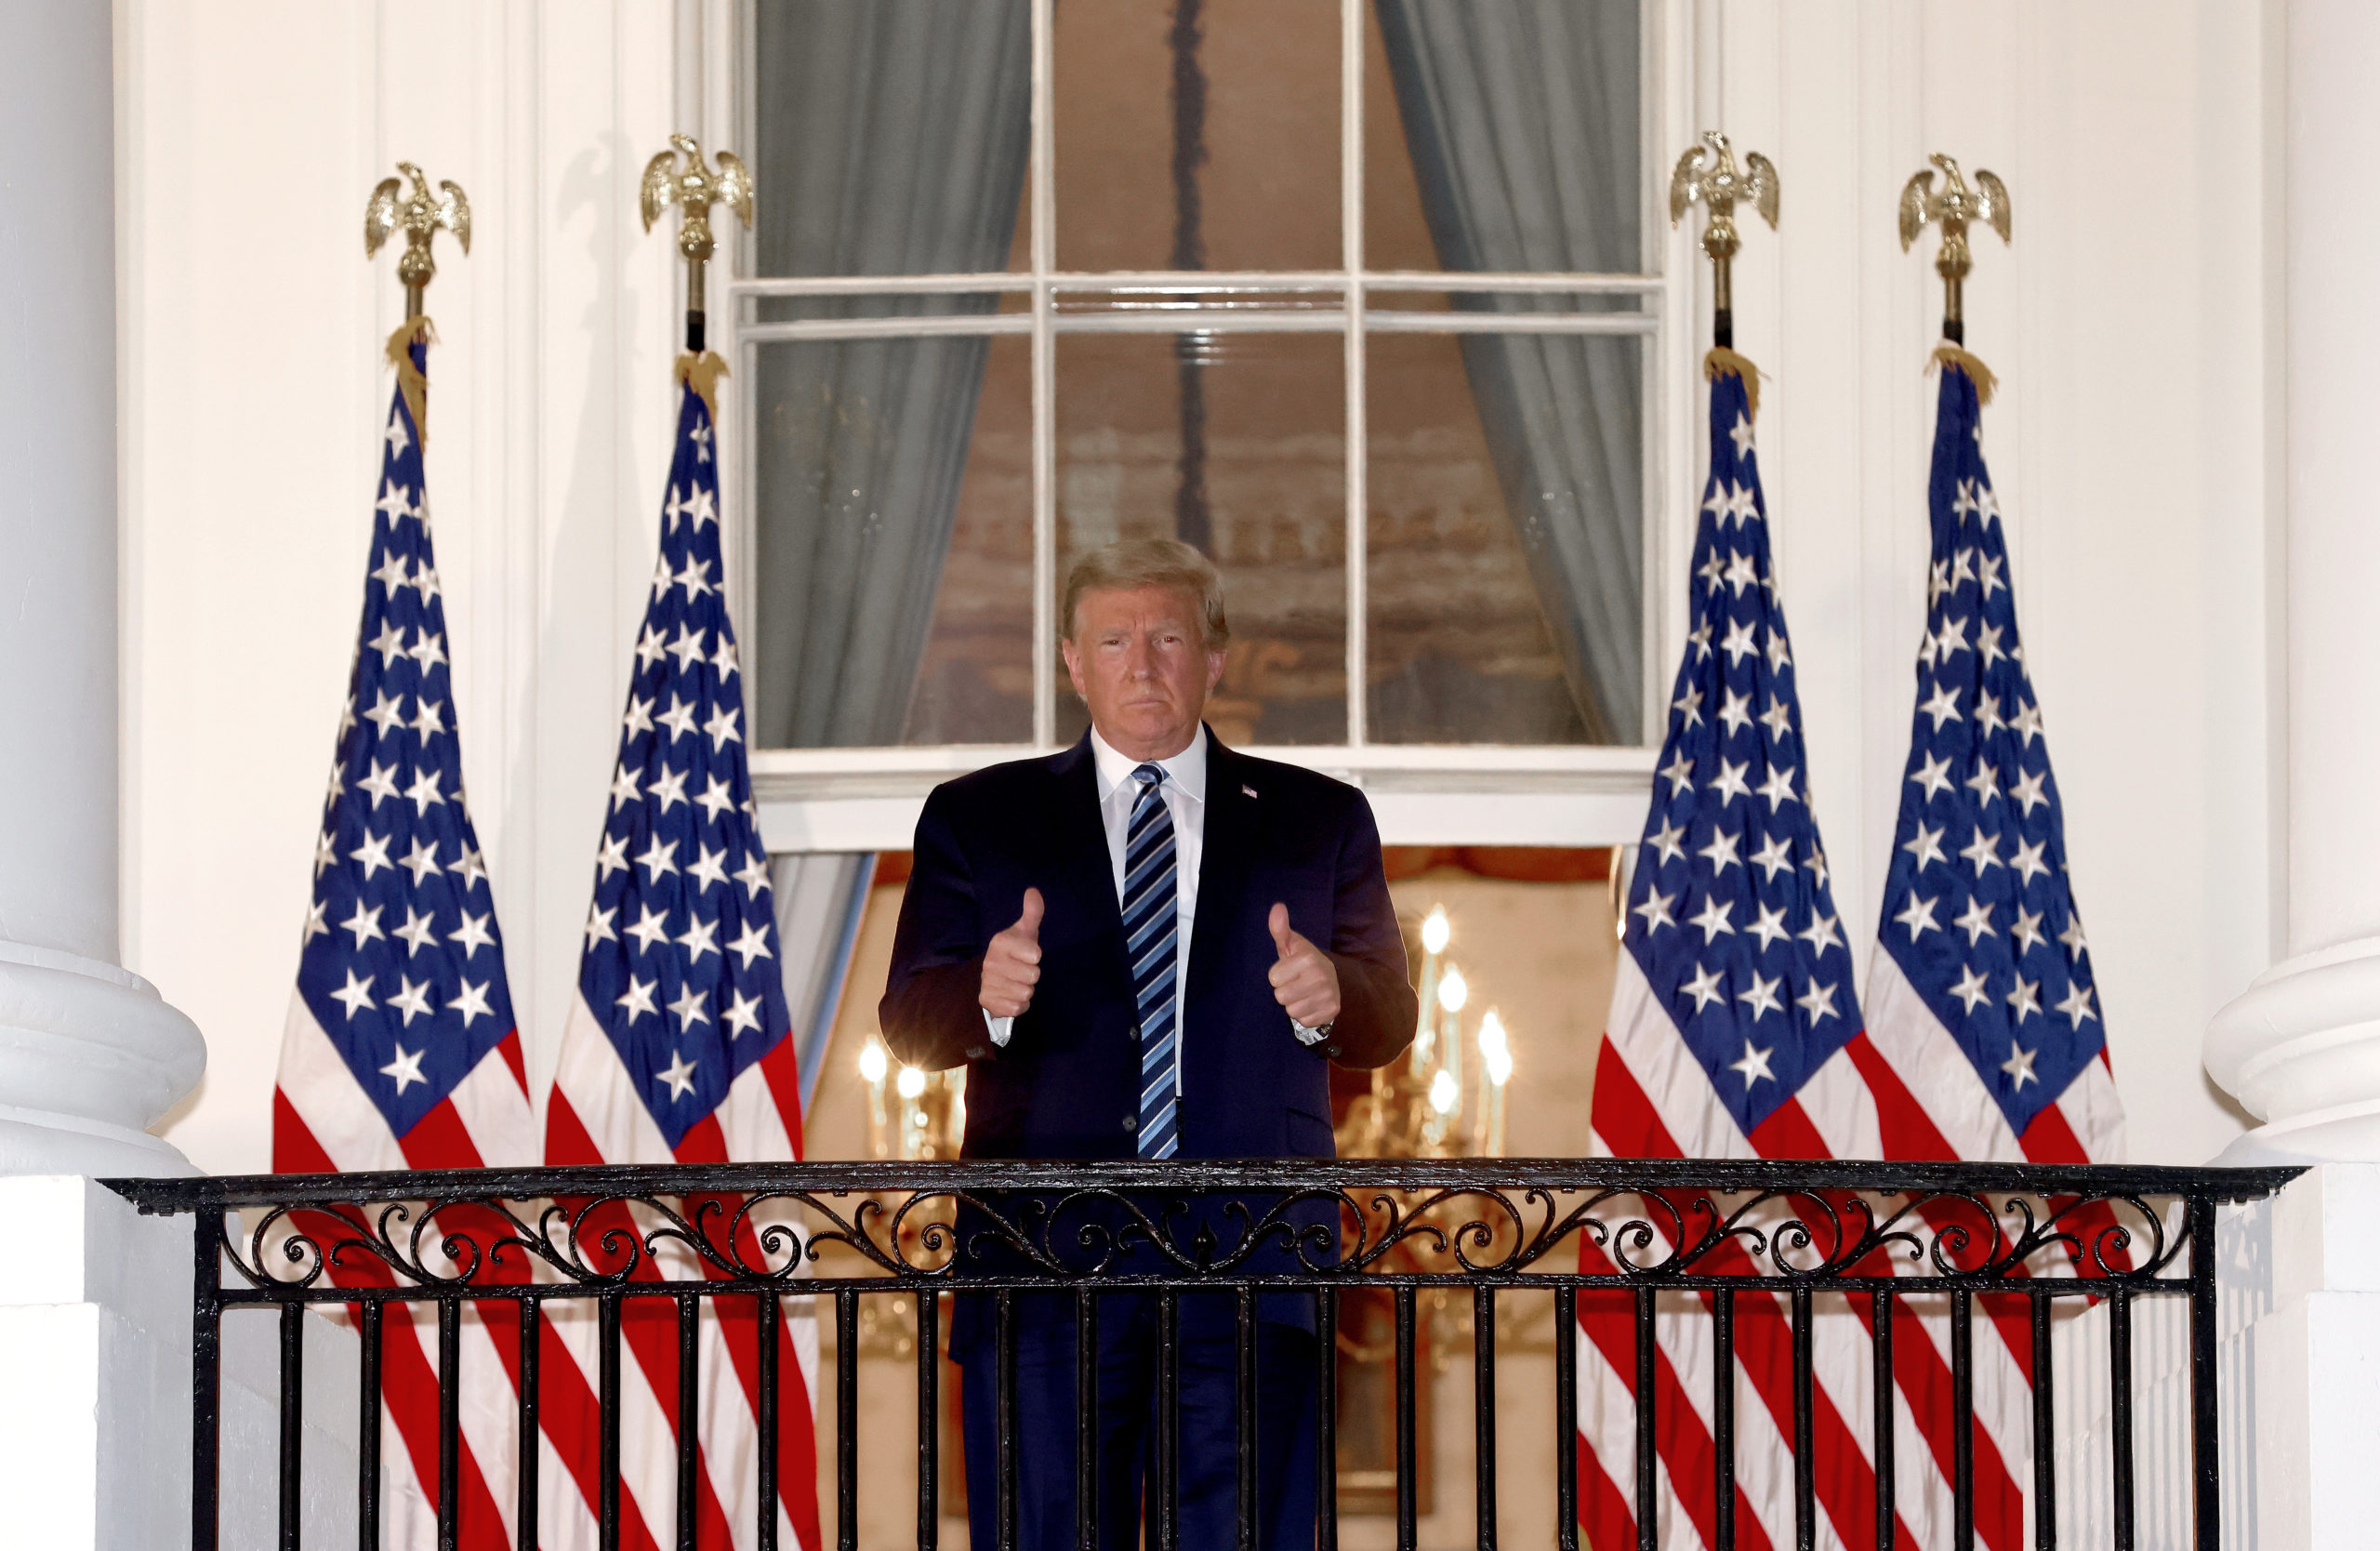 WASHINGTON, DC - OCTOBER 05: U.S. President Donald Trump gives a thumbs up upon return to the White House from Walter Reed National Military Medical Center on October 05, 2020 in Washington, DC. Trump spent three days hospitalized for coronavirus. (Photo by Win McNamee/Getty Images)